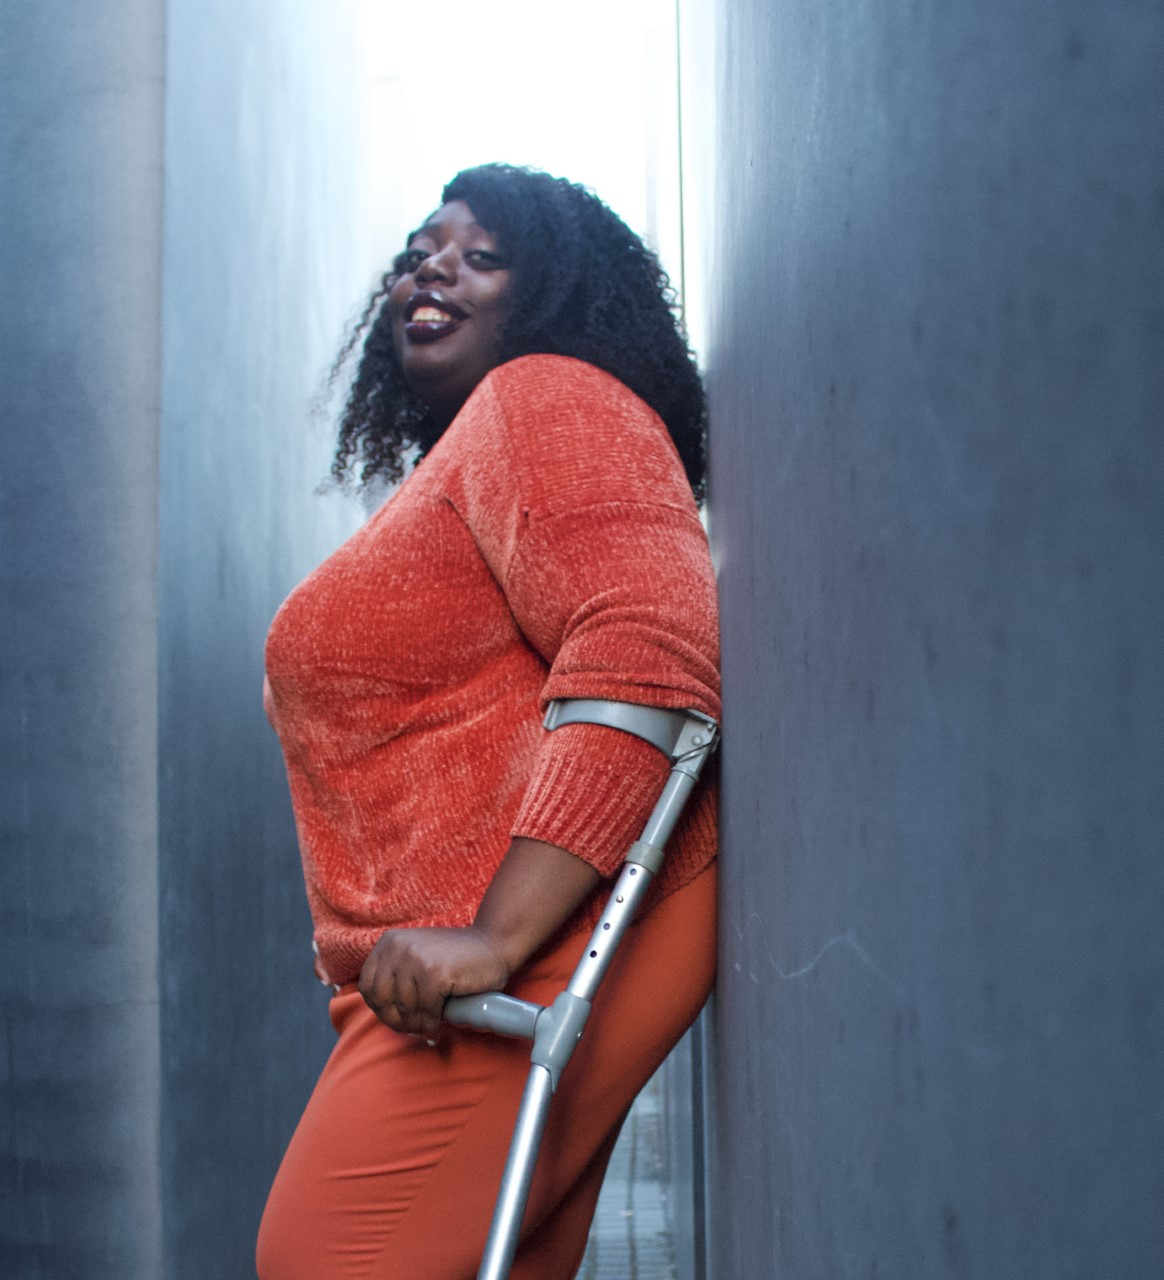 Image of new trainee Mojere Ajayi-Egunjobi wearing an all orange outfit, leaning on a wall and looking at the camera with a smile. She is standing up and supported by forearm crutches.